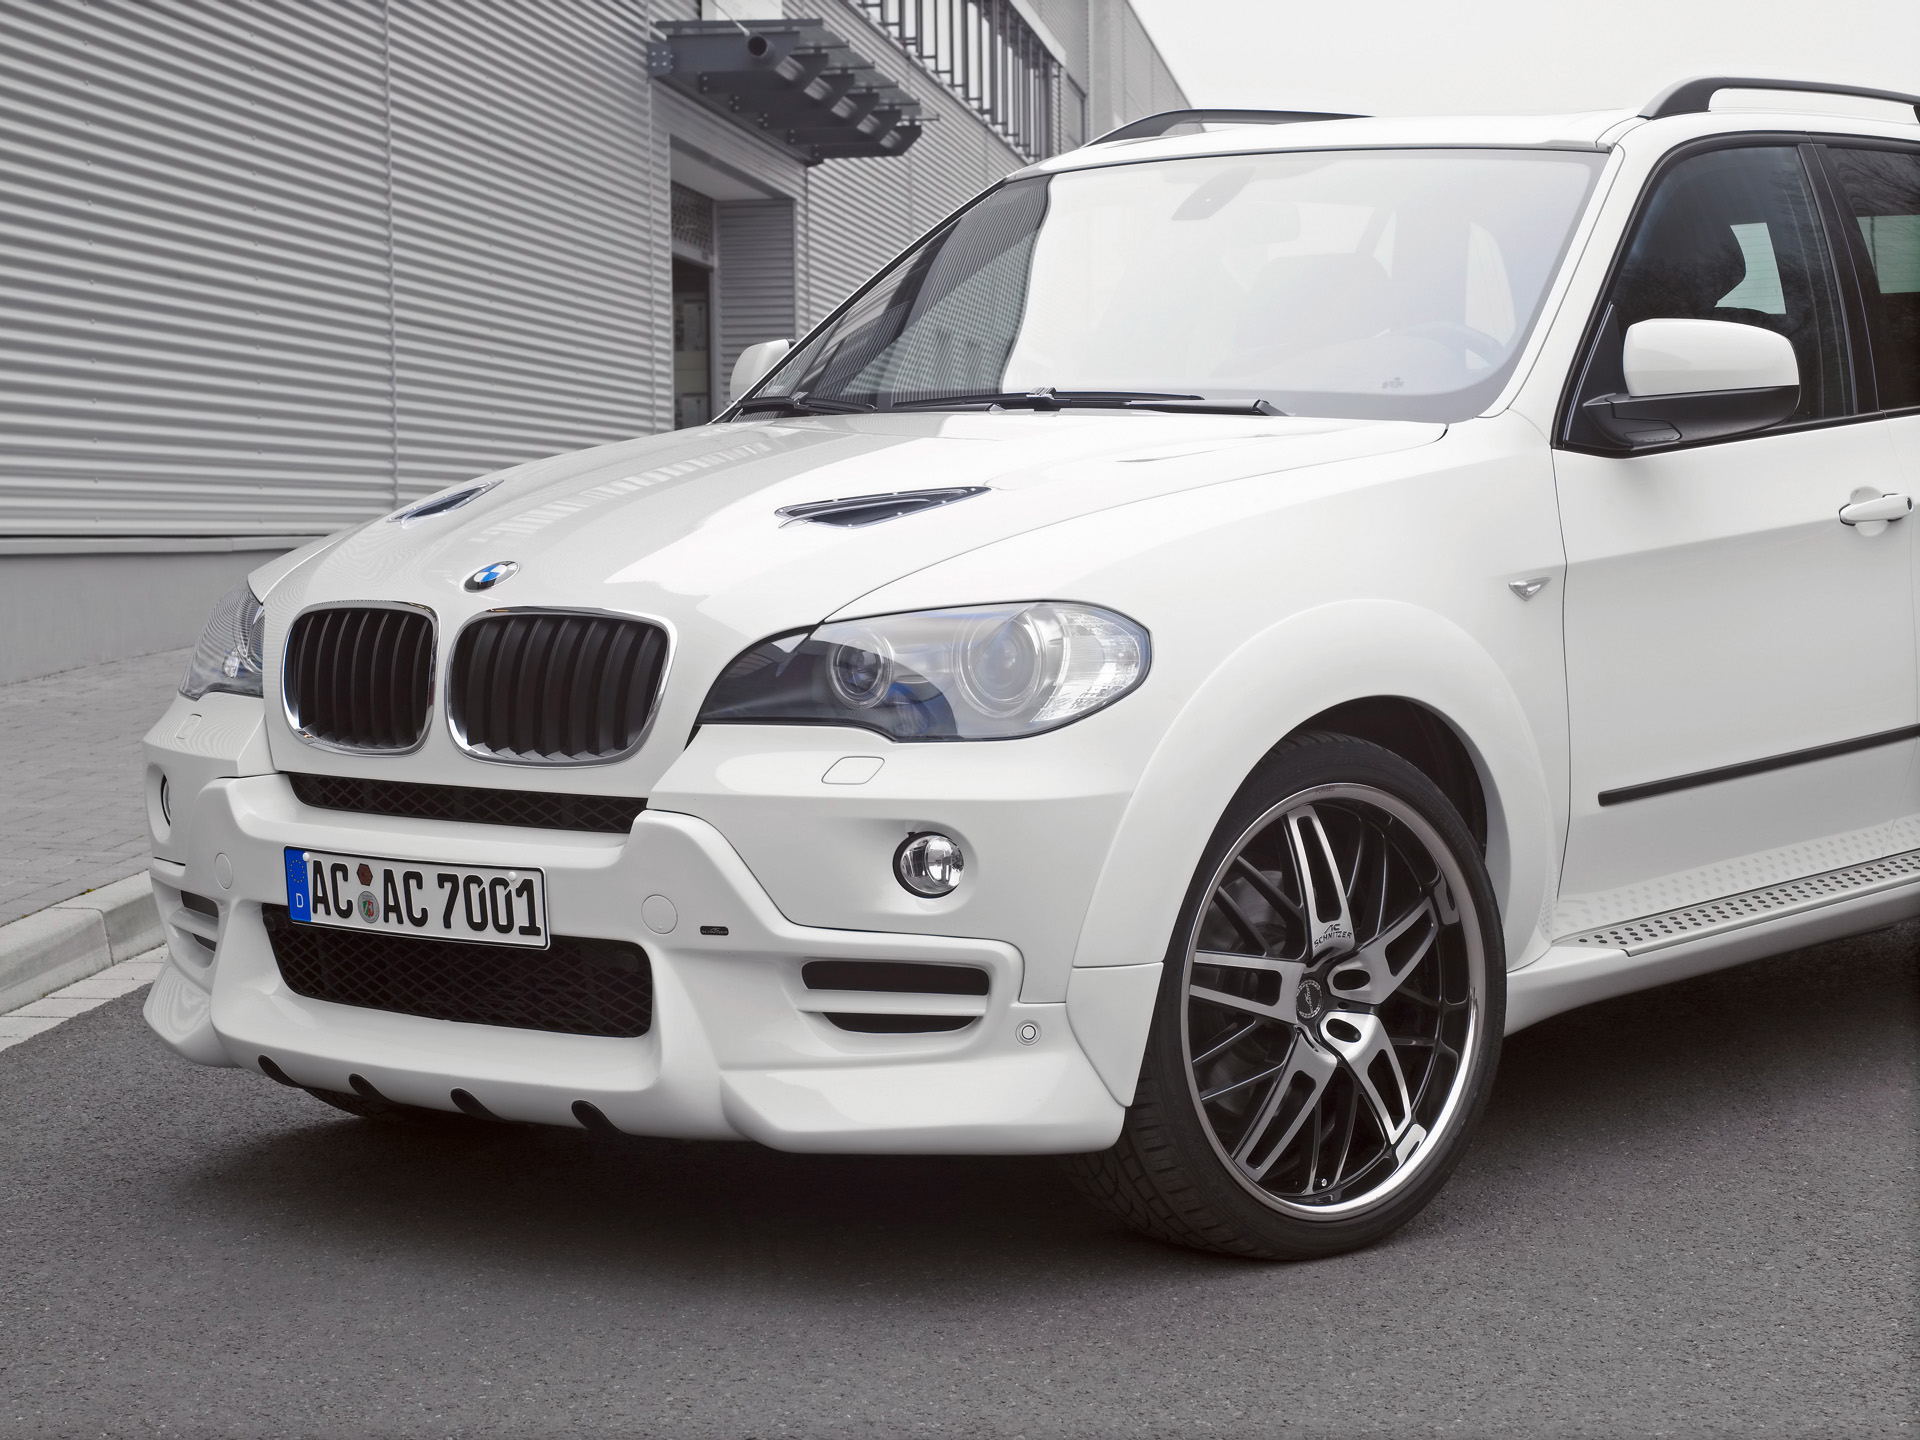 2008 ac schnitzer bmw x5 falcon image collections hd cars wallpaper 2008 ac schnitzer bmw x5 falcon choice image hd cars wallpaper 2008 ac schnitzer bmw x5 vanachro Gallery